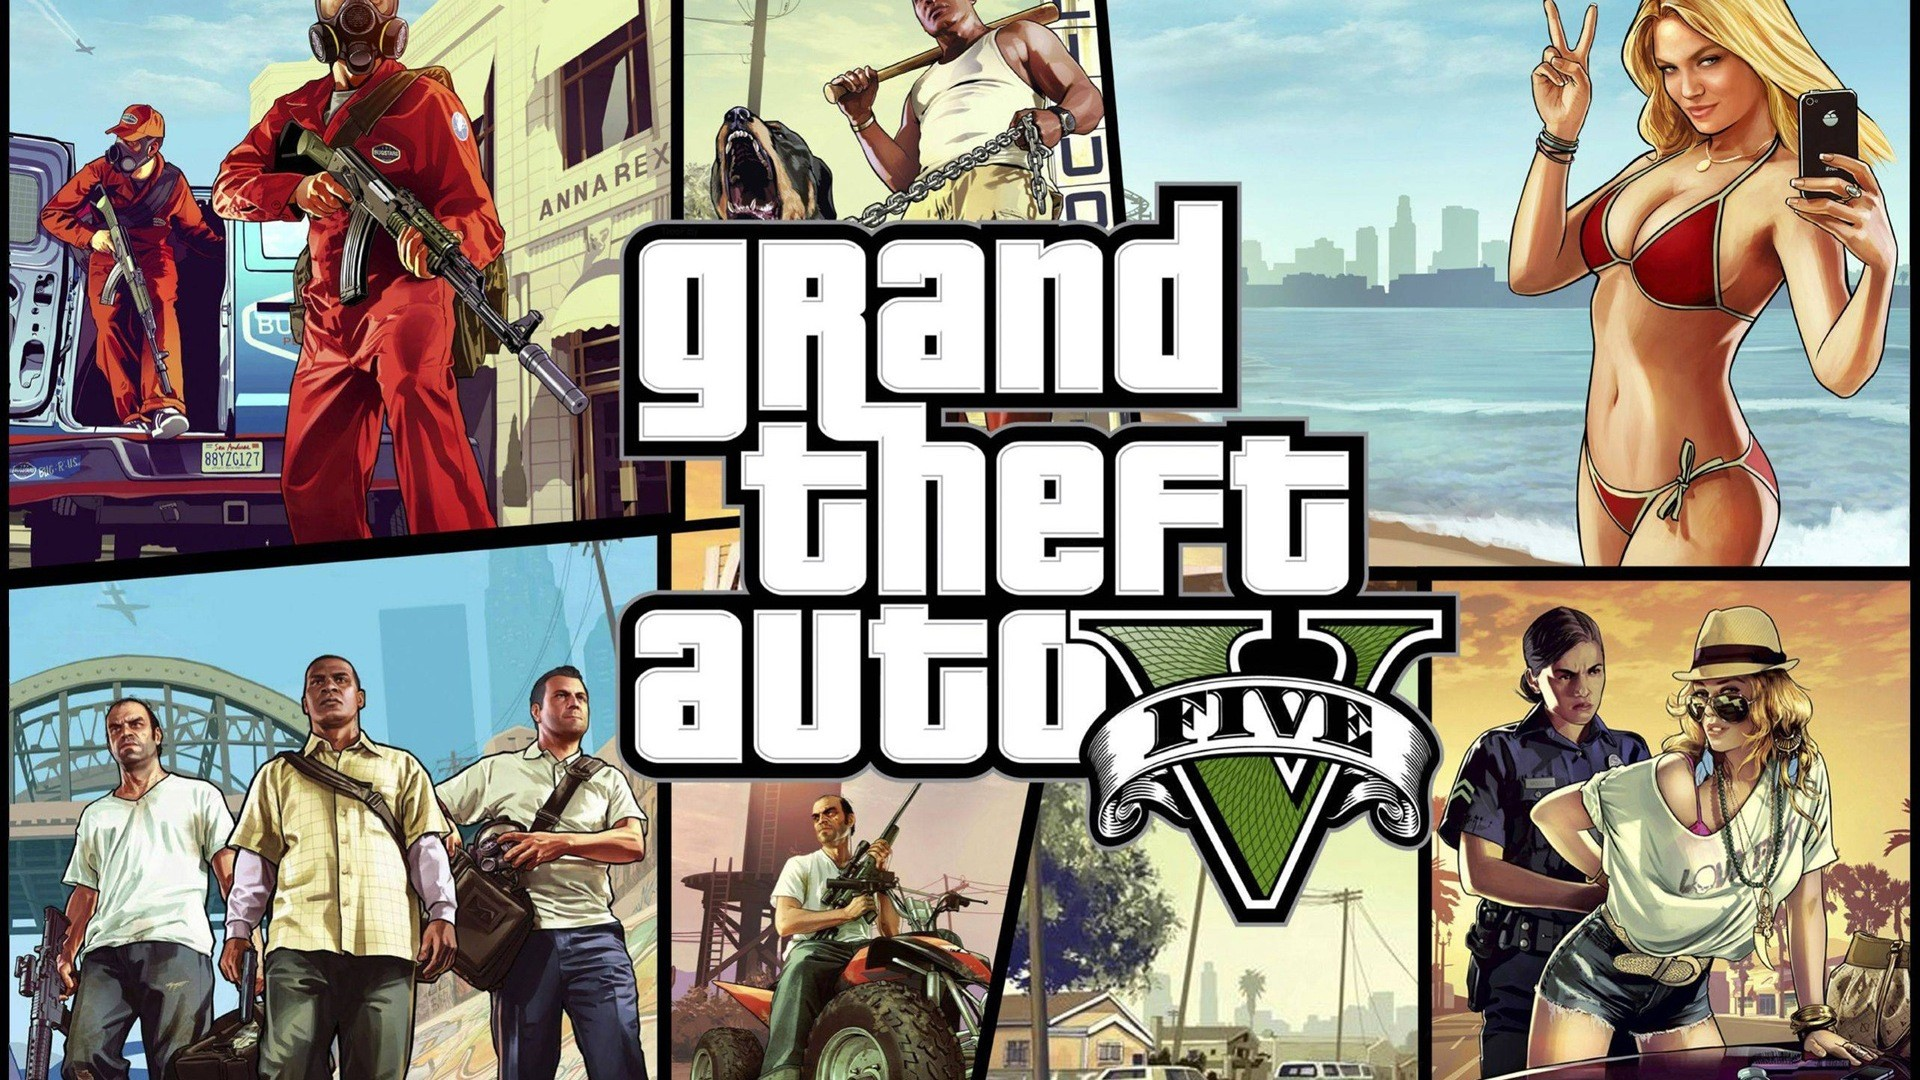 Grand Theft Auto V GTA 5 HD game wallpapers #8 – 1920×1080.